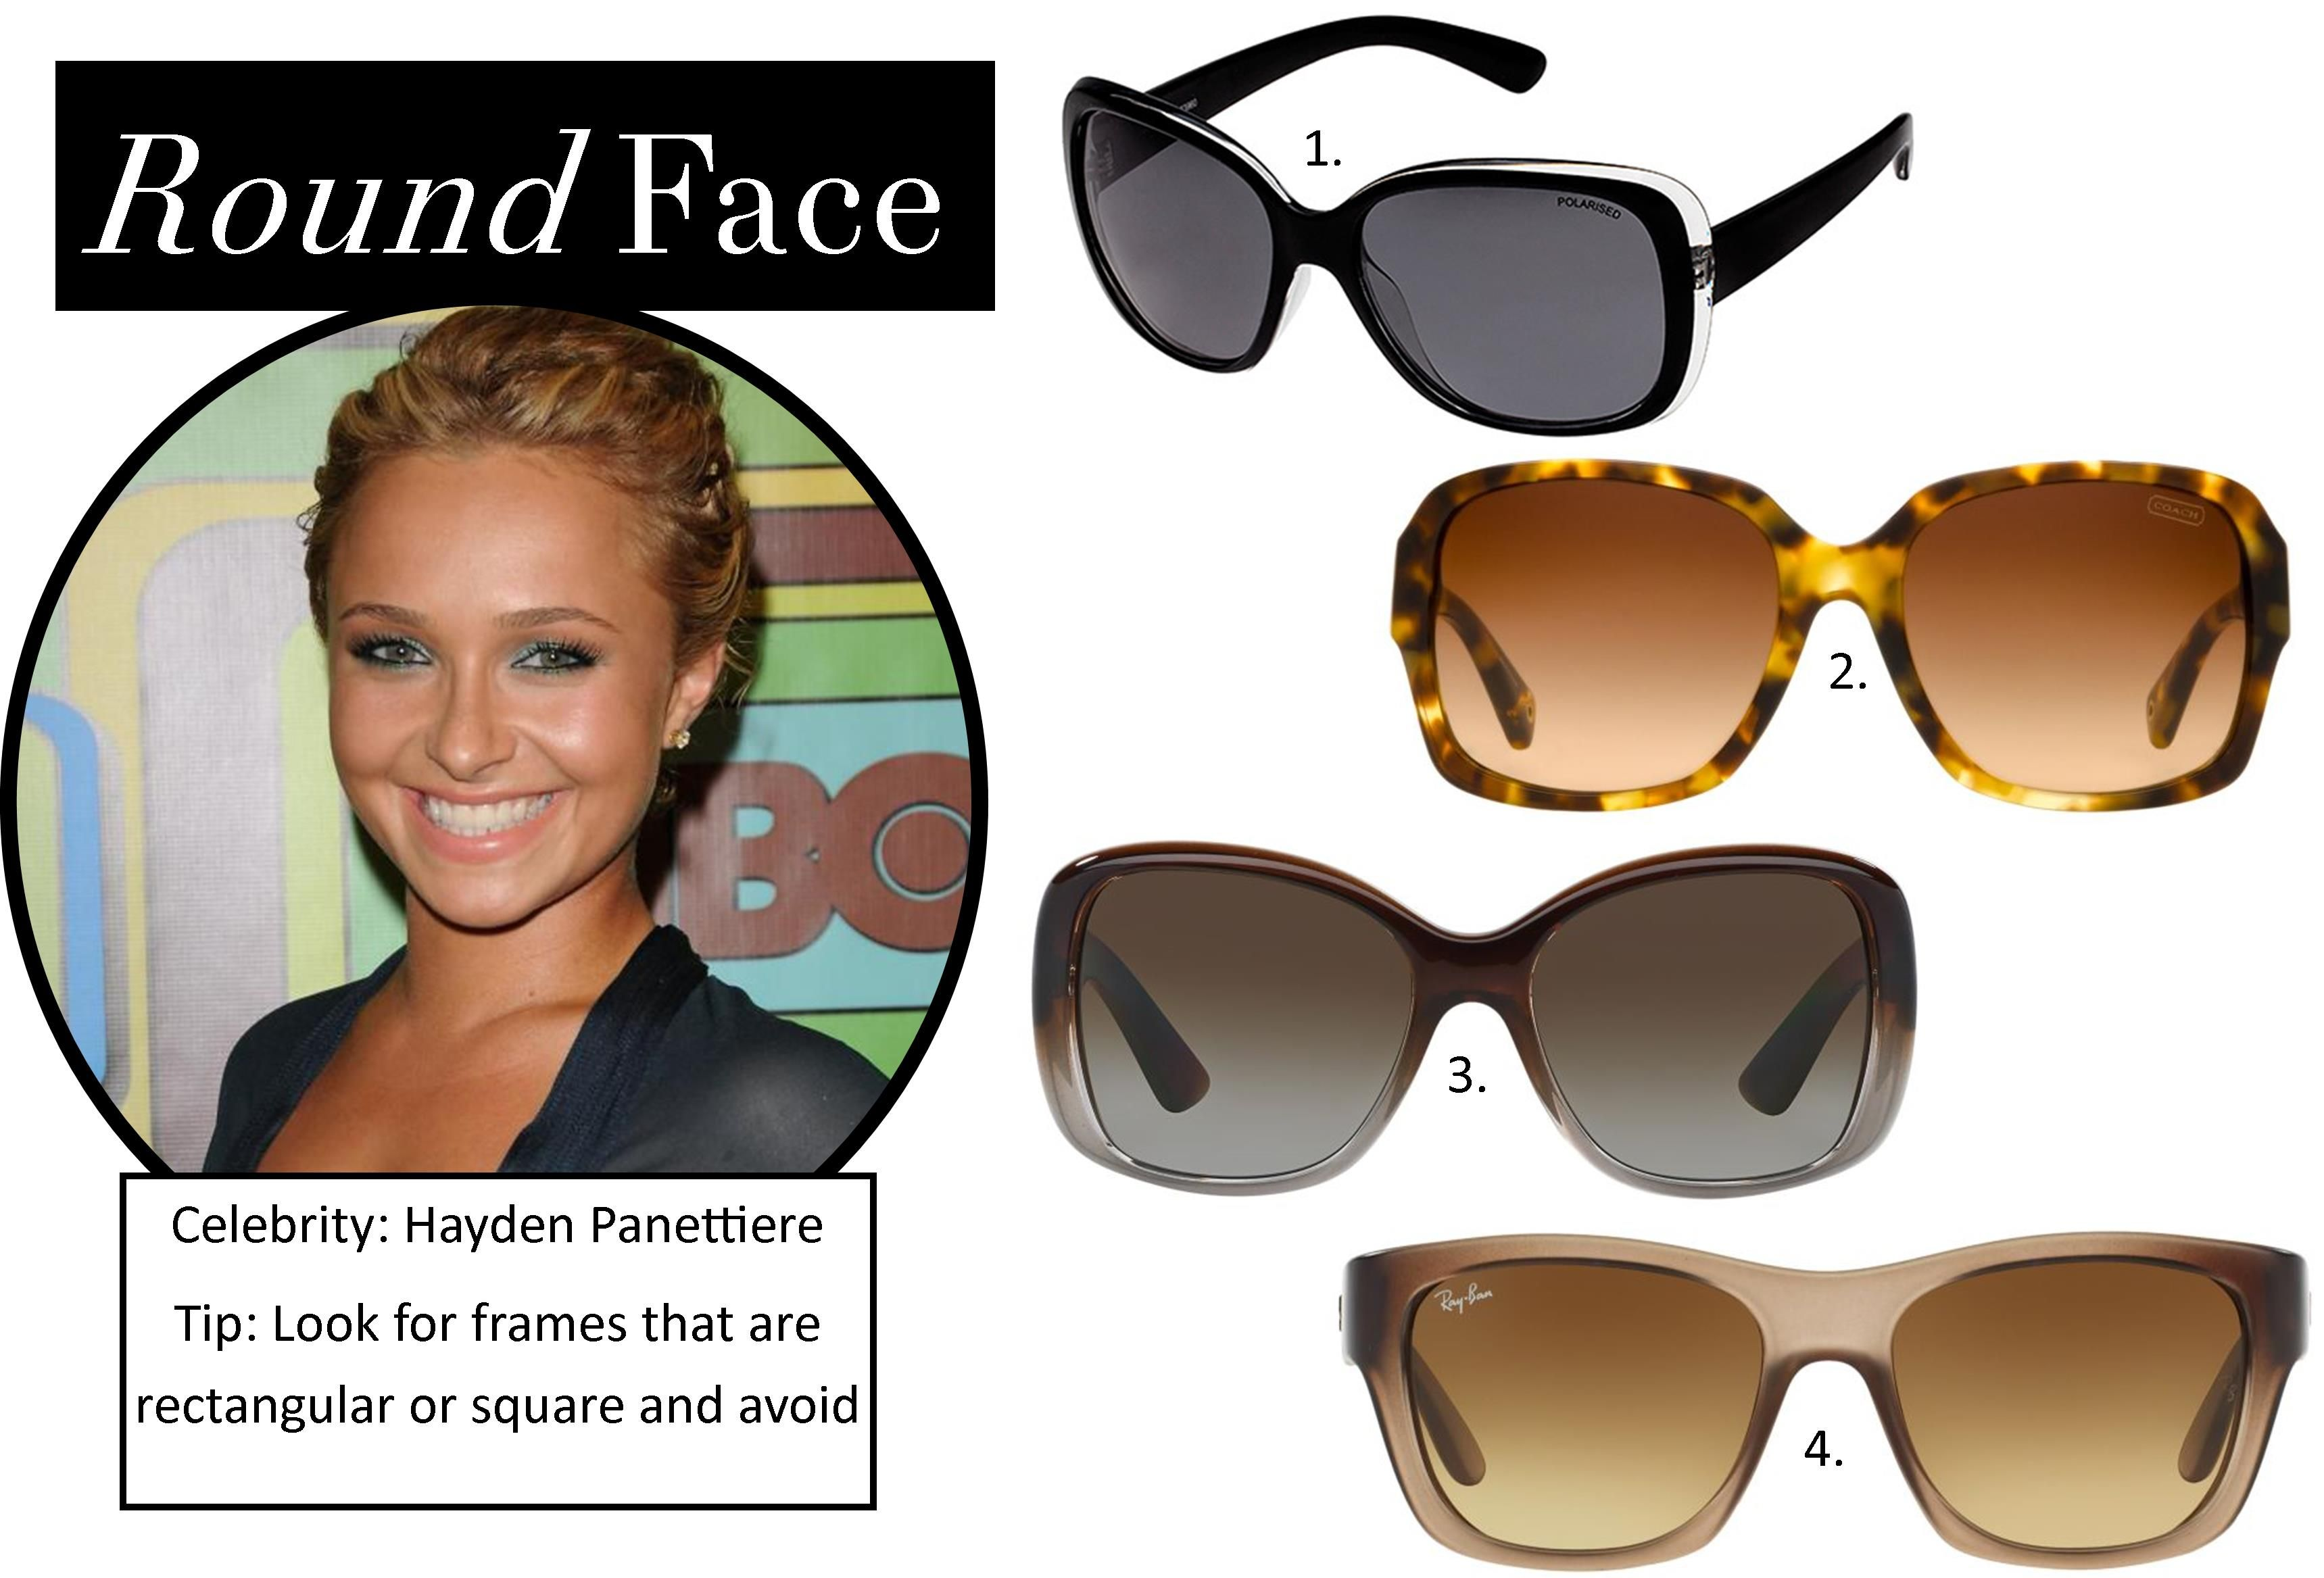 48e5088e6c How To Find The Sunglasses Style That Suit Your Face Shape